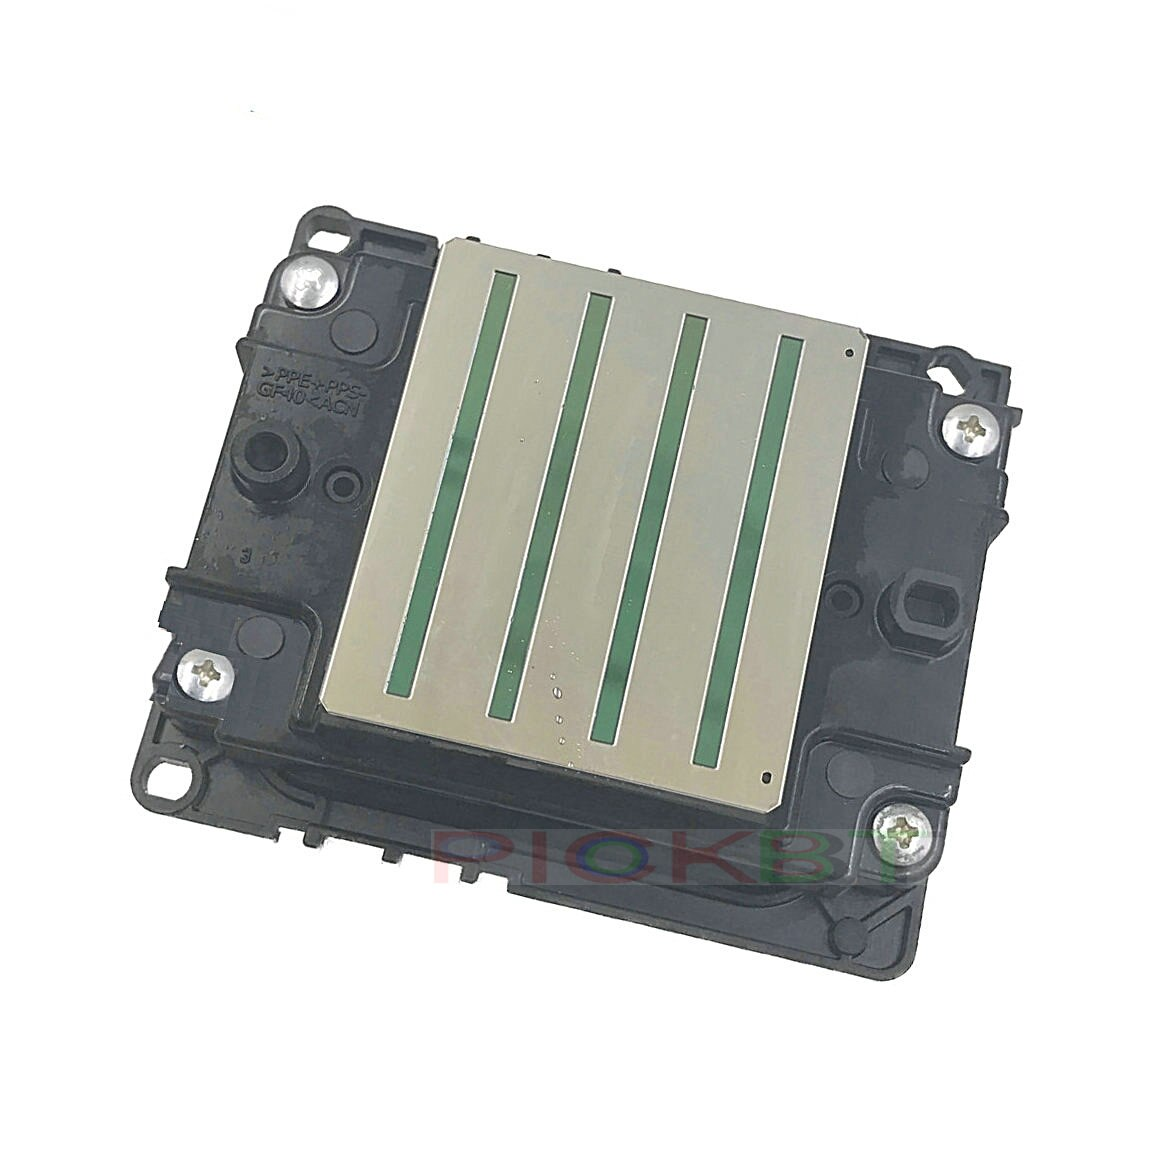 solvent printer human lcd board for epson dx5 print head epson printhead print head For Epson Printer head for WF4720 4730 WF4720 Fedar sublimation printer Fedar printer FD1900 4720